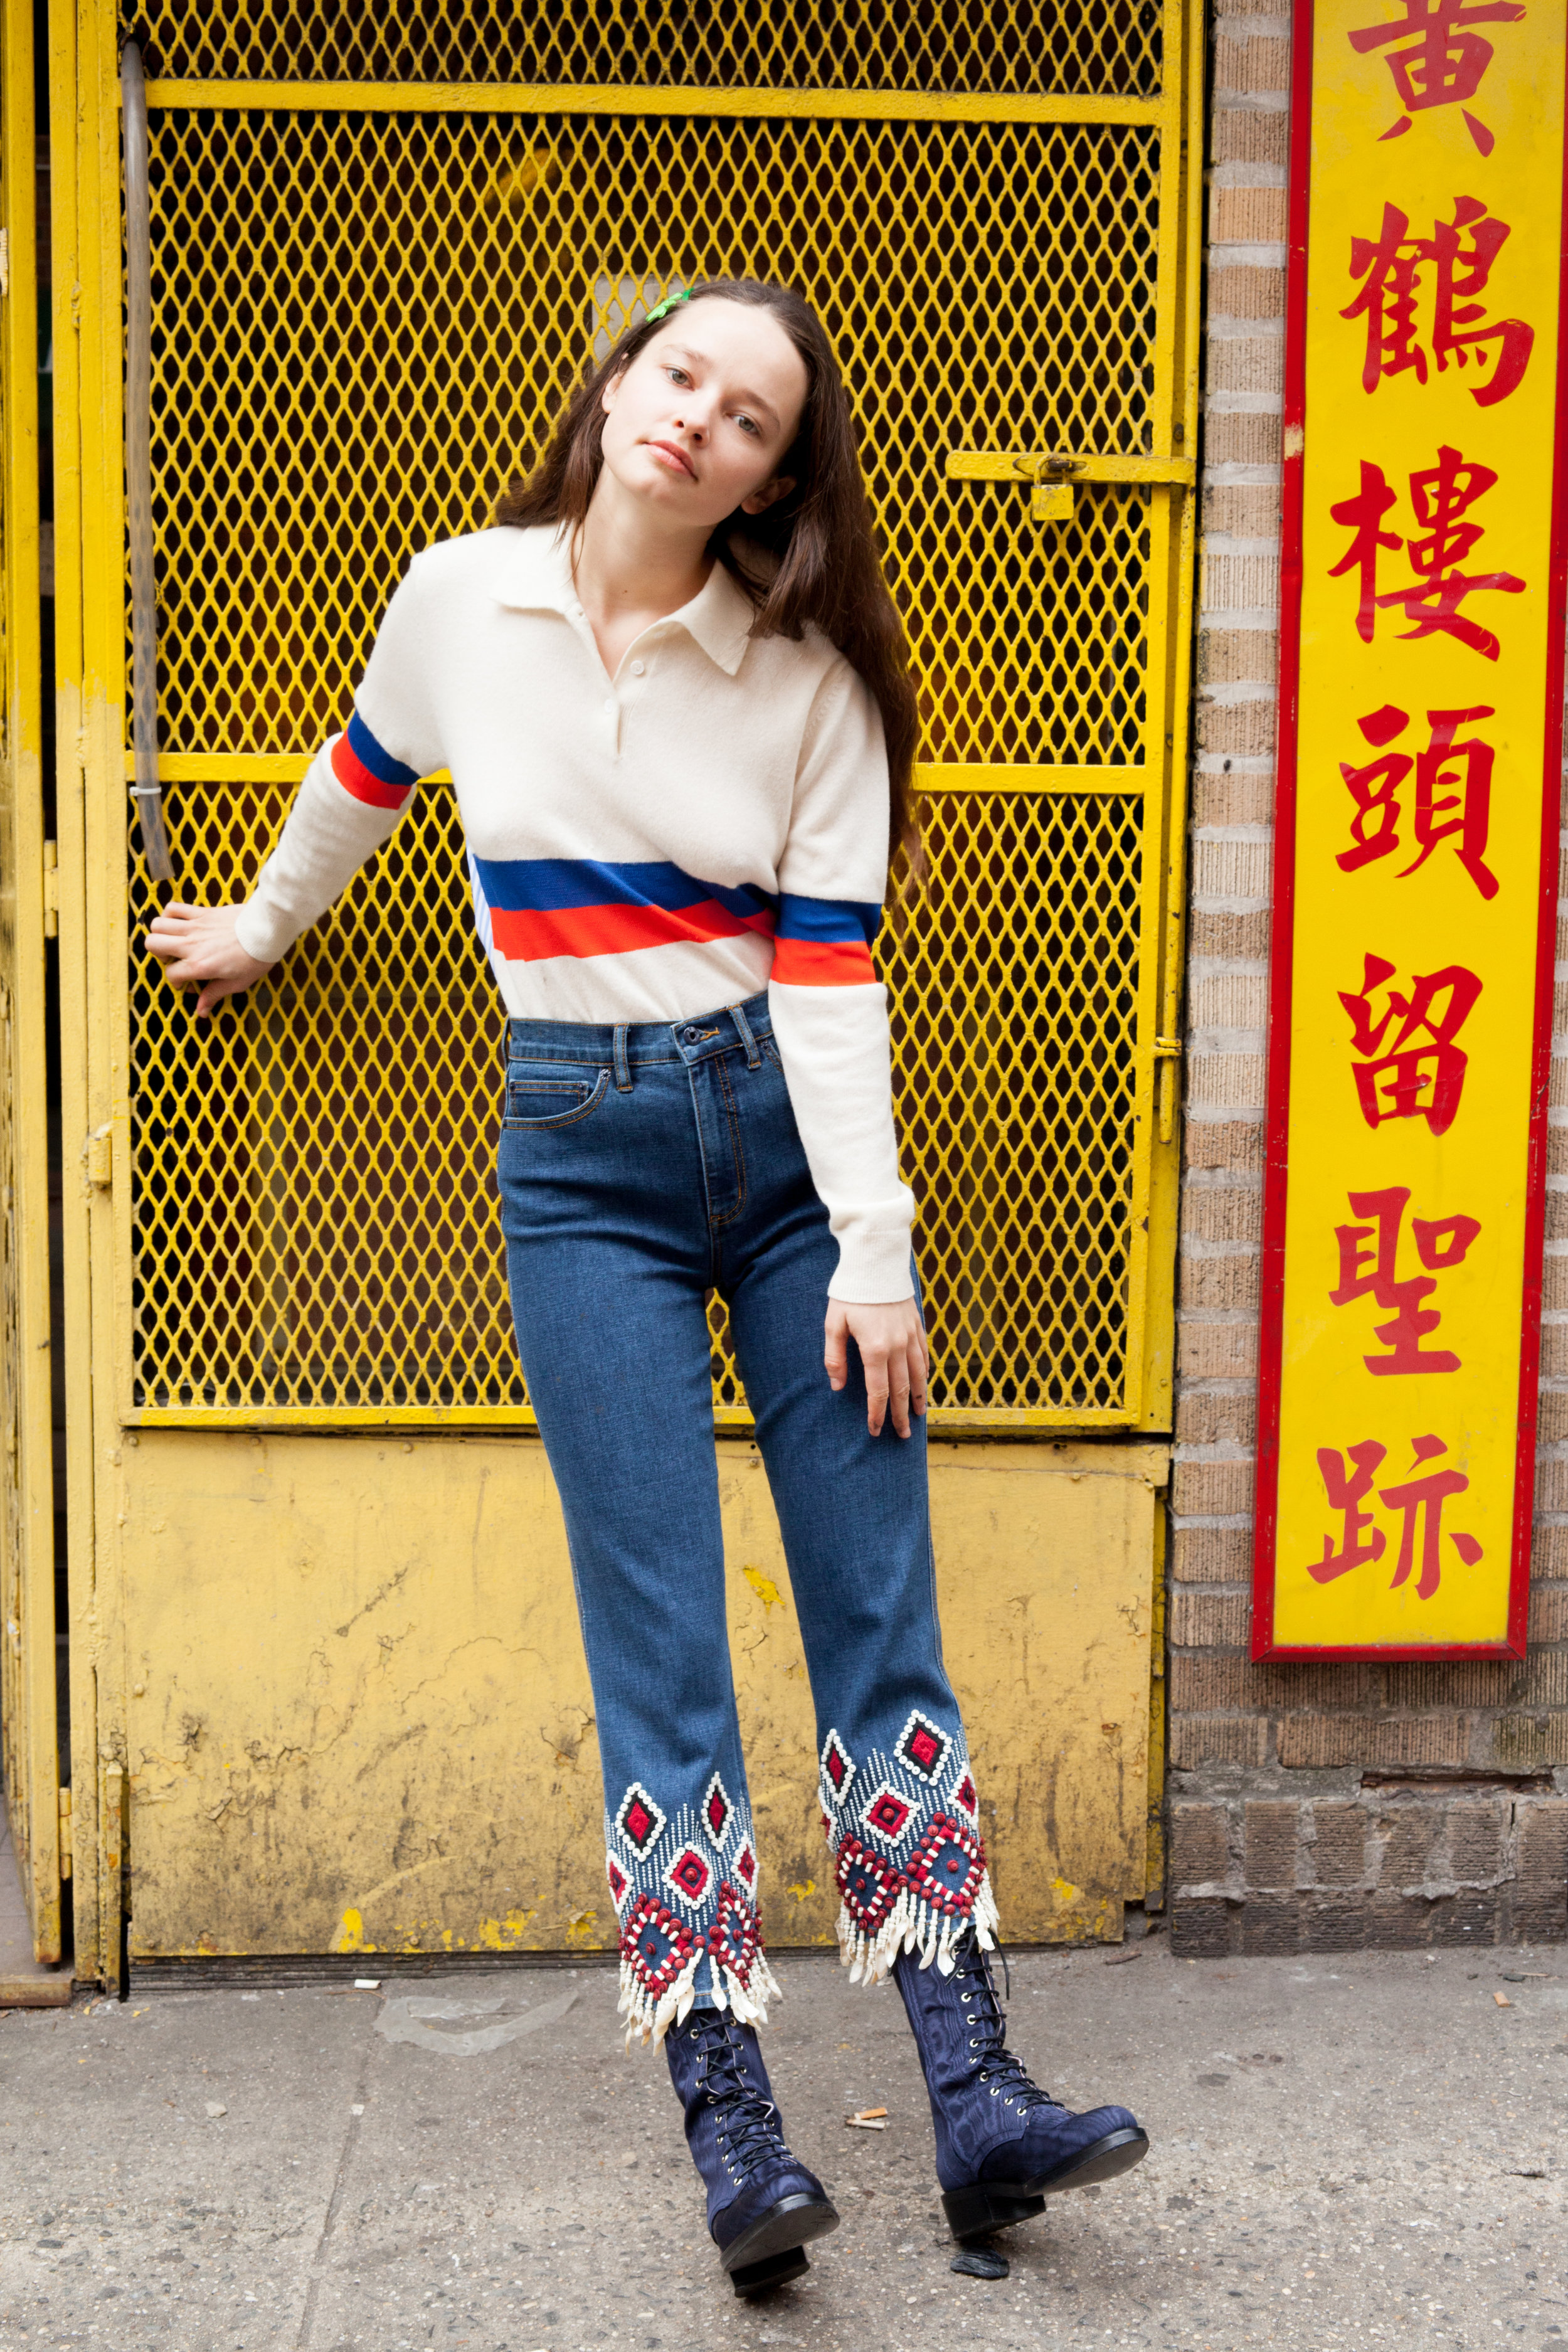 MR by Man Repeller Shoes Leandra Medine Cohen Hannah Kuessner Edith Young Man Repeller March 2018-4634.jpg